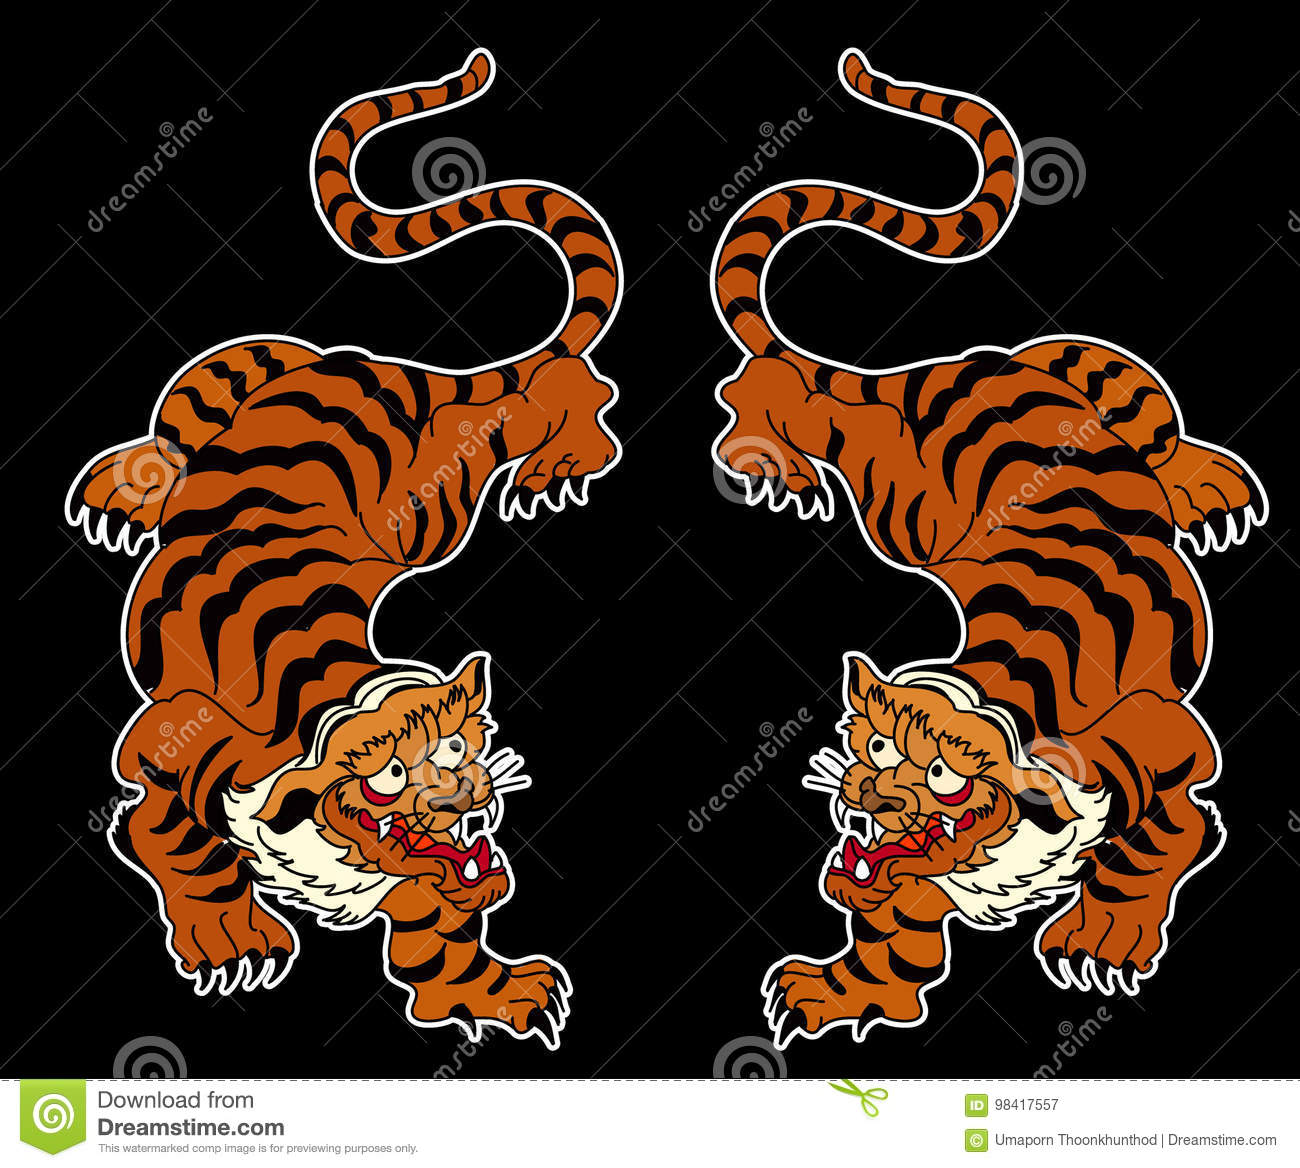 ee3e6e273bc29 Outline and doodle art Tiger vector is on black background.Drawing tiger  for tattoo. More similar stock illustrations